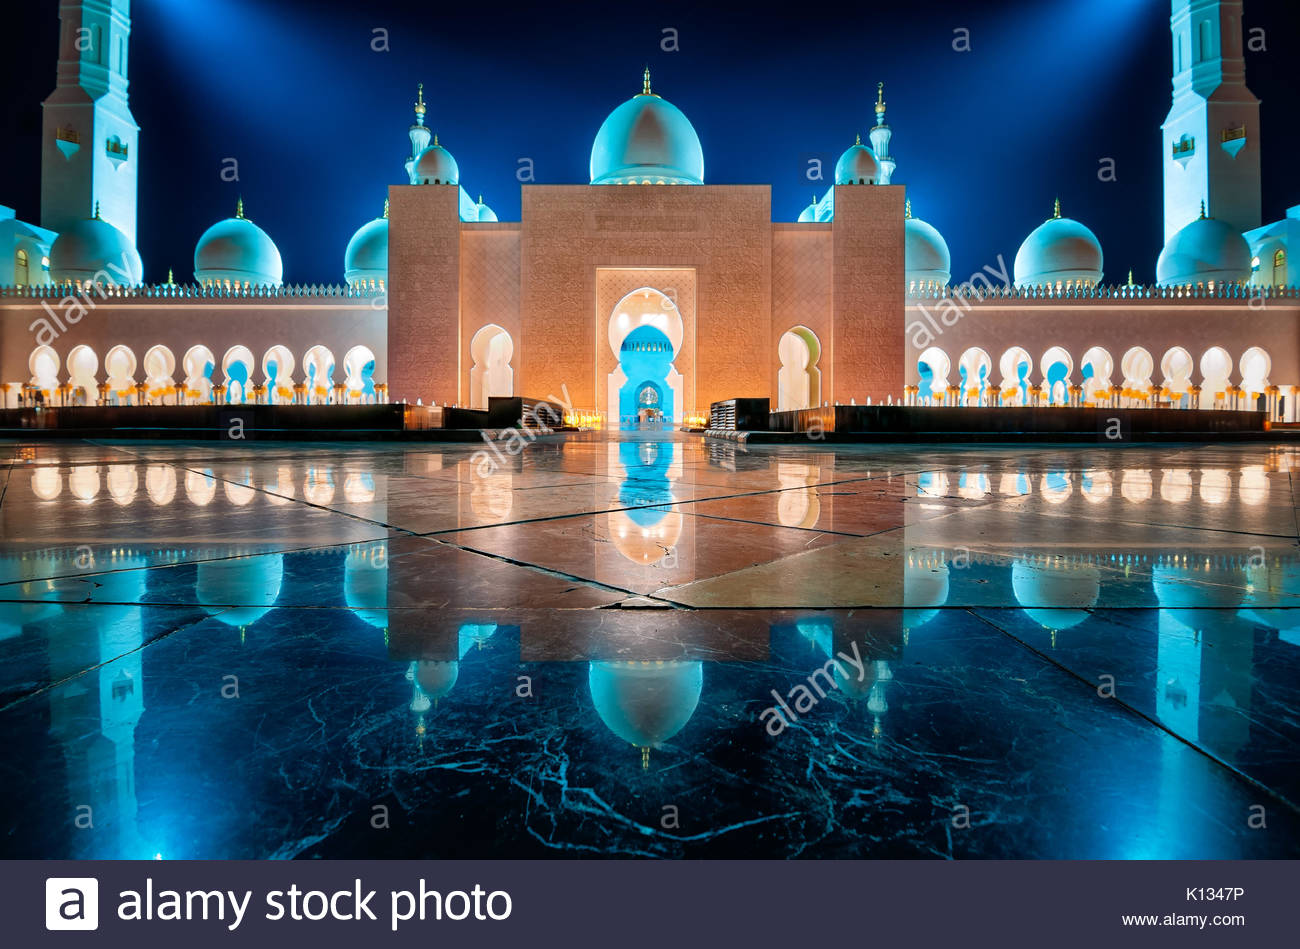 DUBAI, UAE - MARCH 19, 2014: Night view at Sheikh Zayed Grand Mosque, Abu Dhabi, United Arab Emirates - Stock Image